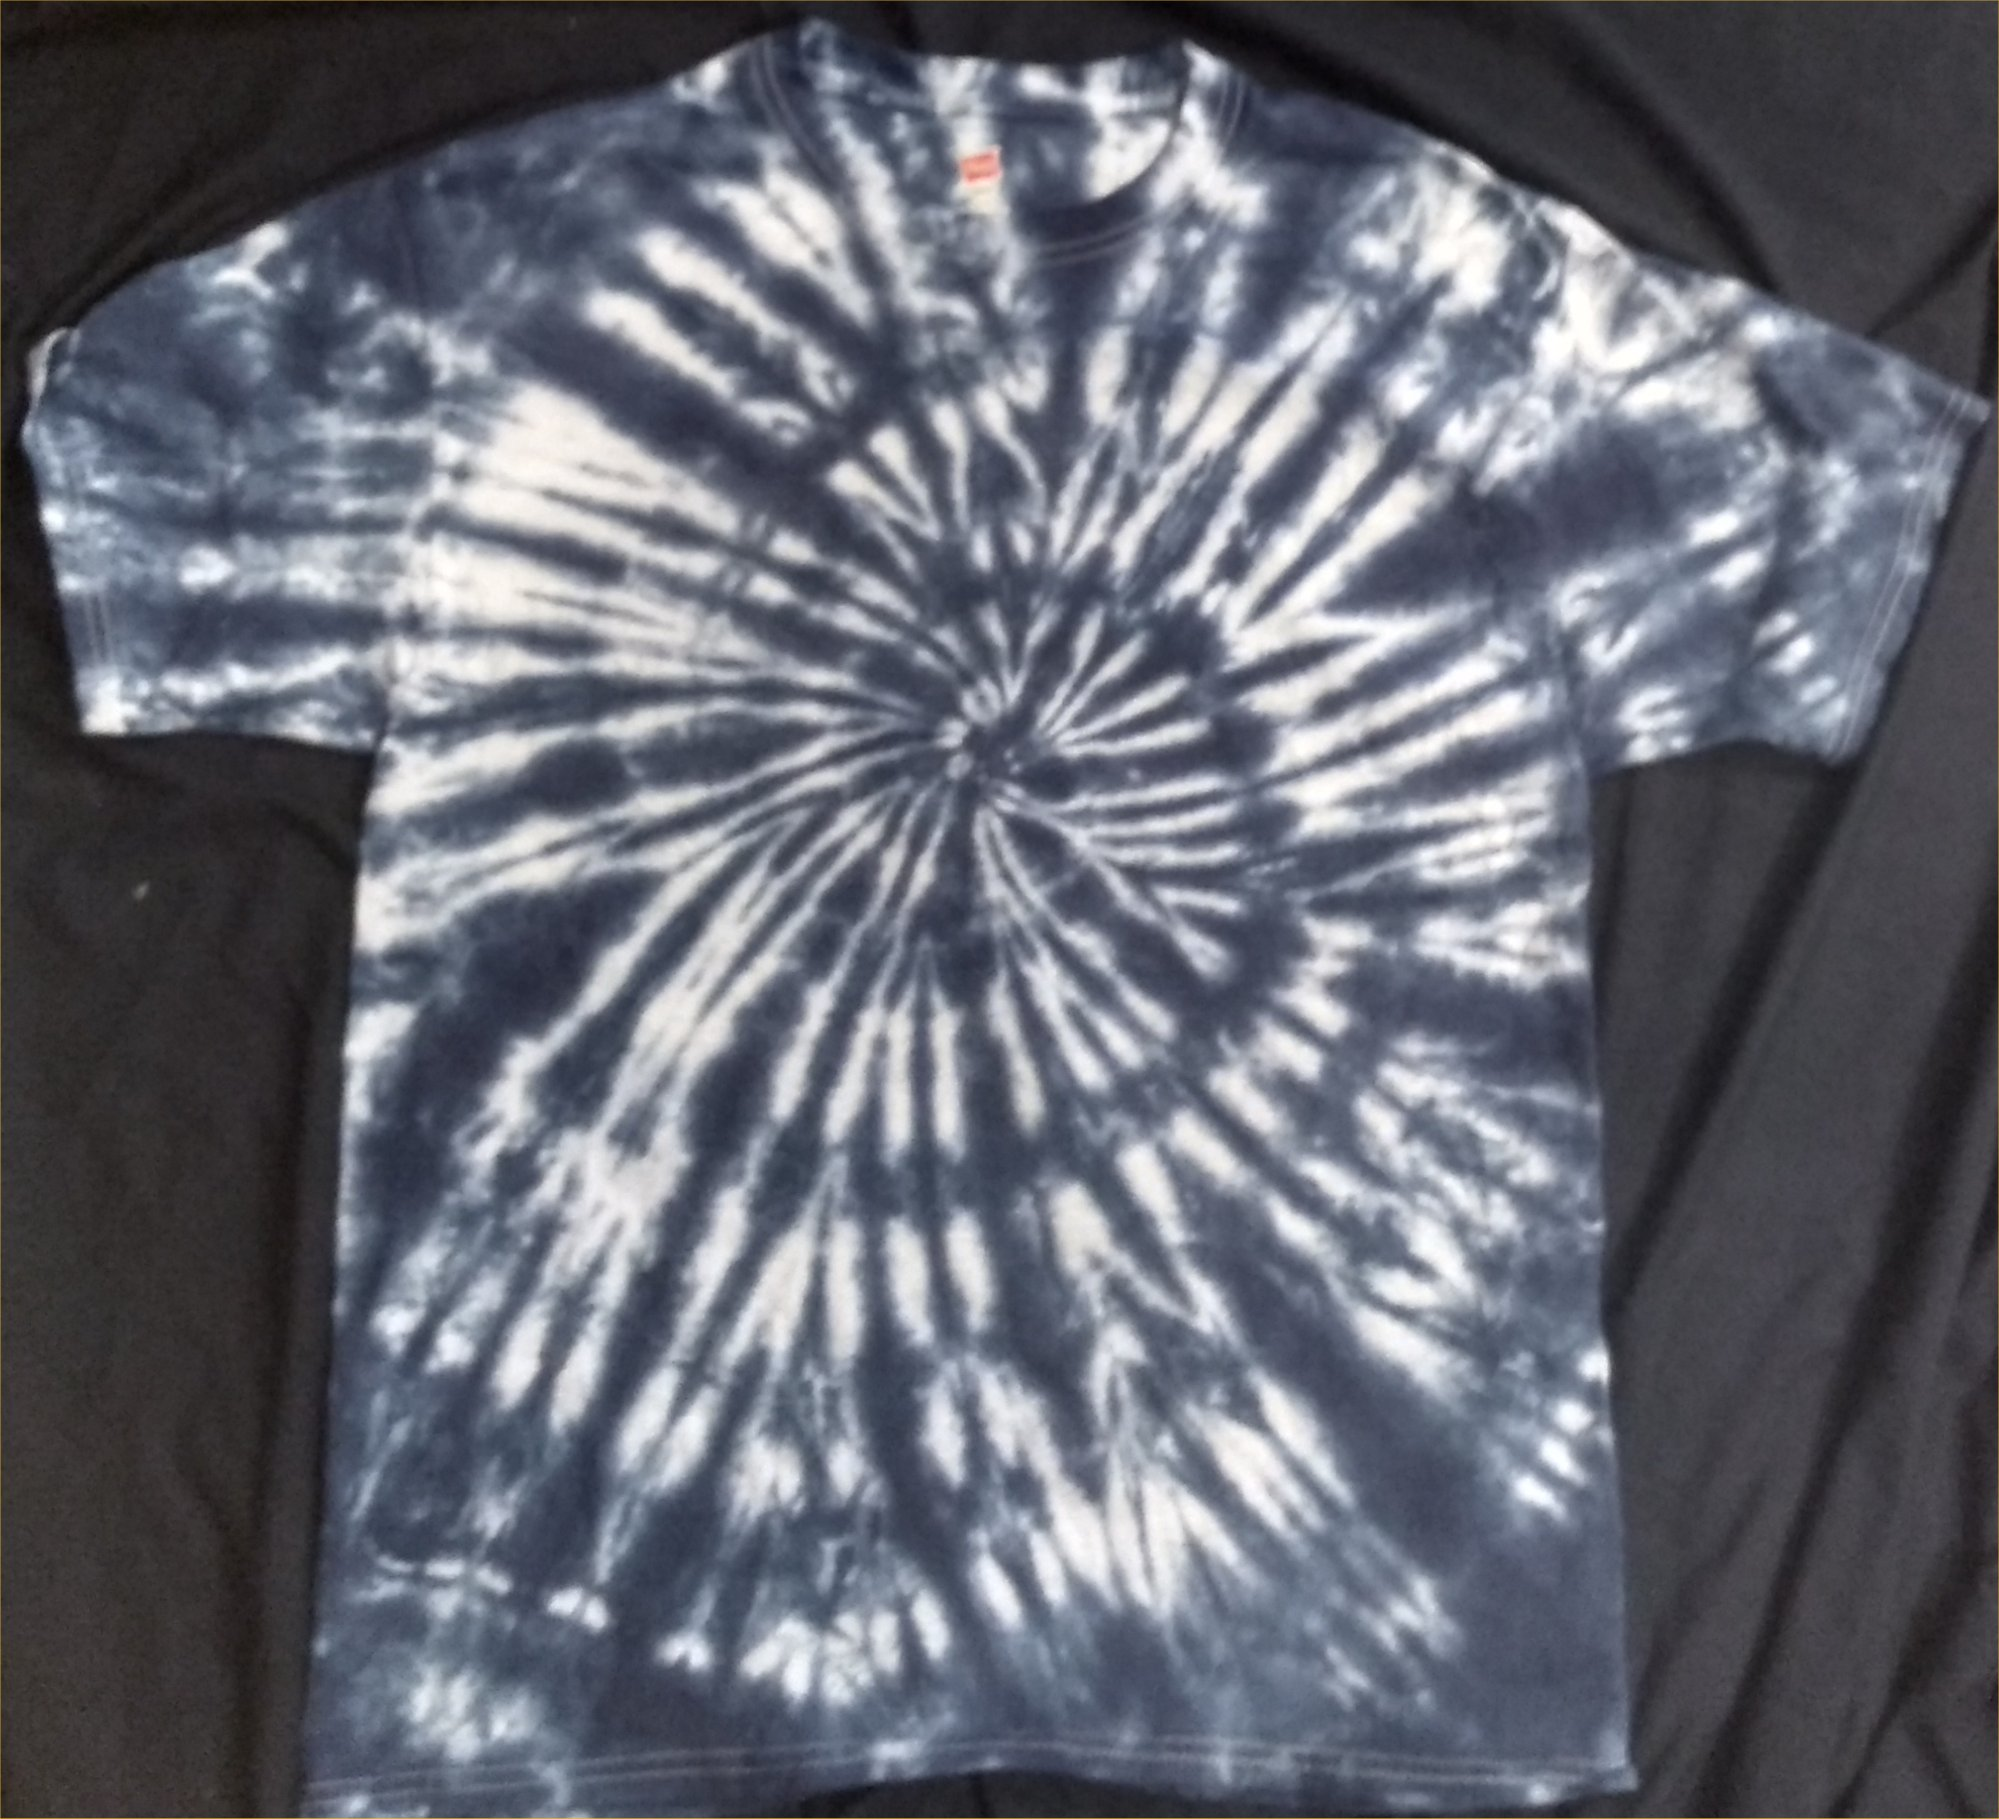 3rd Eye Crystal Gemstone Shirt Size L